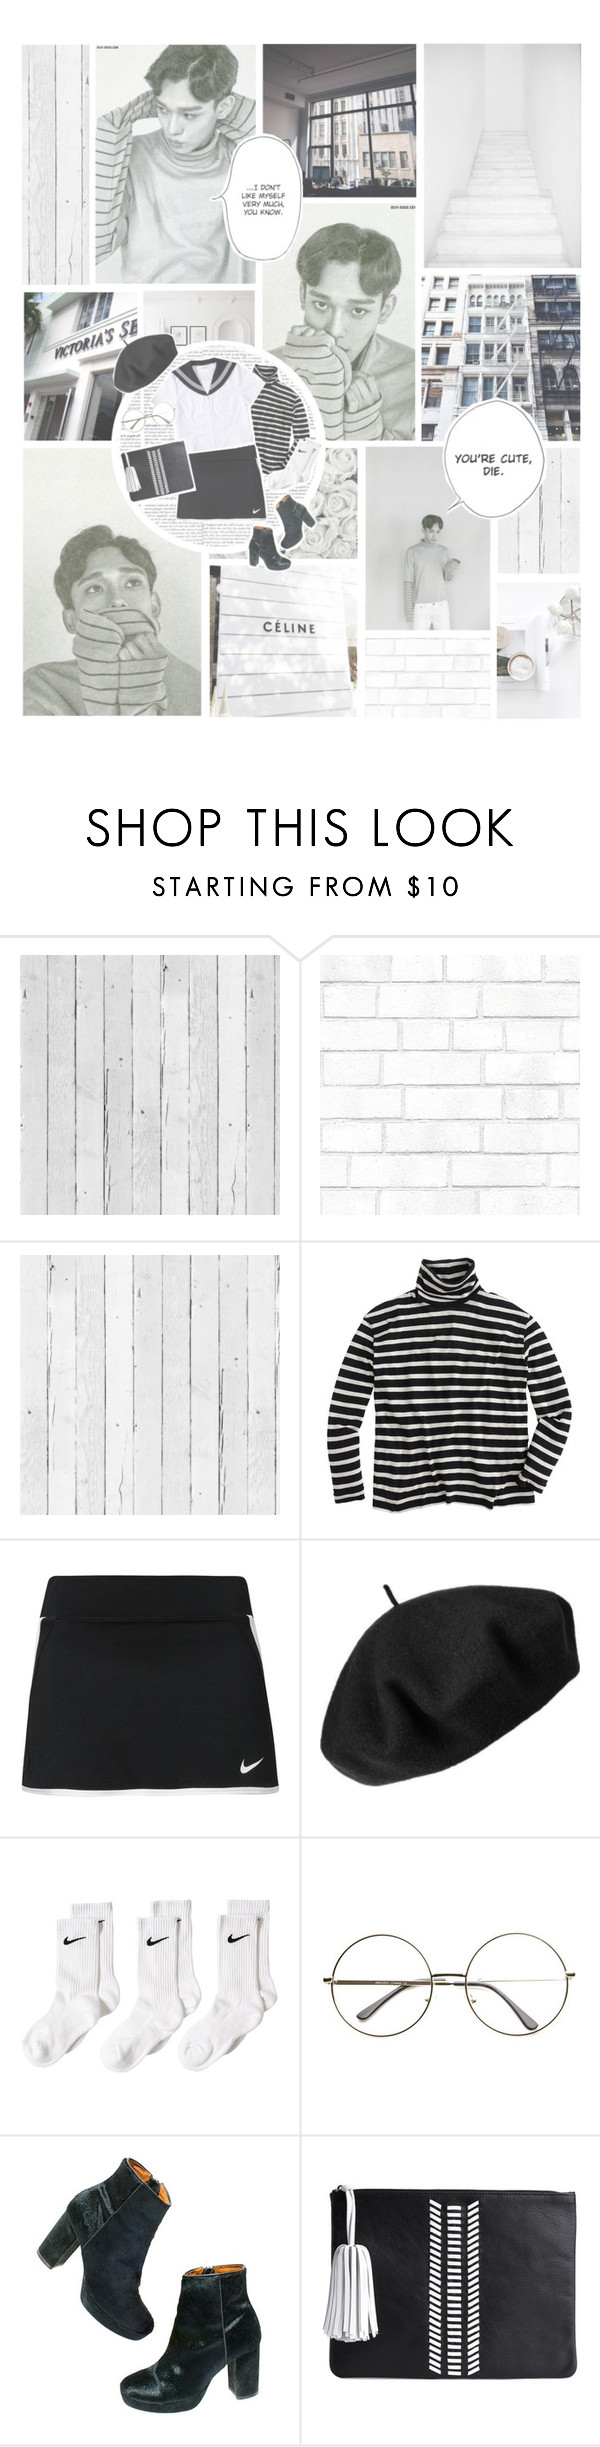 """KELLY"" by lovehelena ❤ liked on Polyvore featuring Piet Hein Eek, AG Adriano Goldschmied, NLXL, J.Crew, NIKE, Betmar, Madewell and Ela"